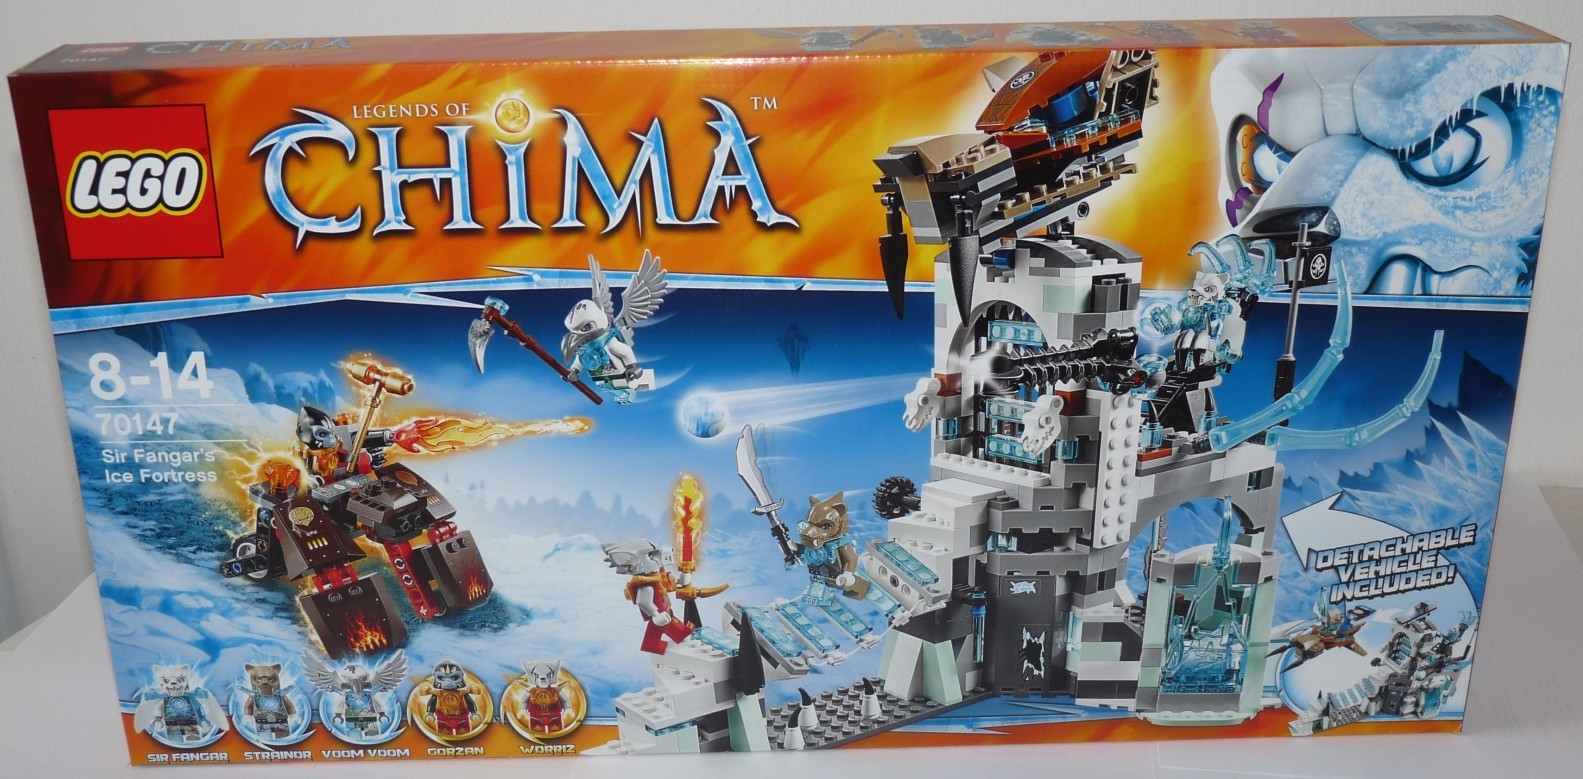 the fantasy-based LEGO Legends of Chima isn't the most popular LEGO